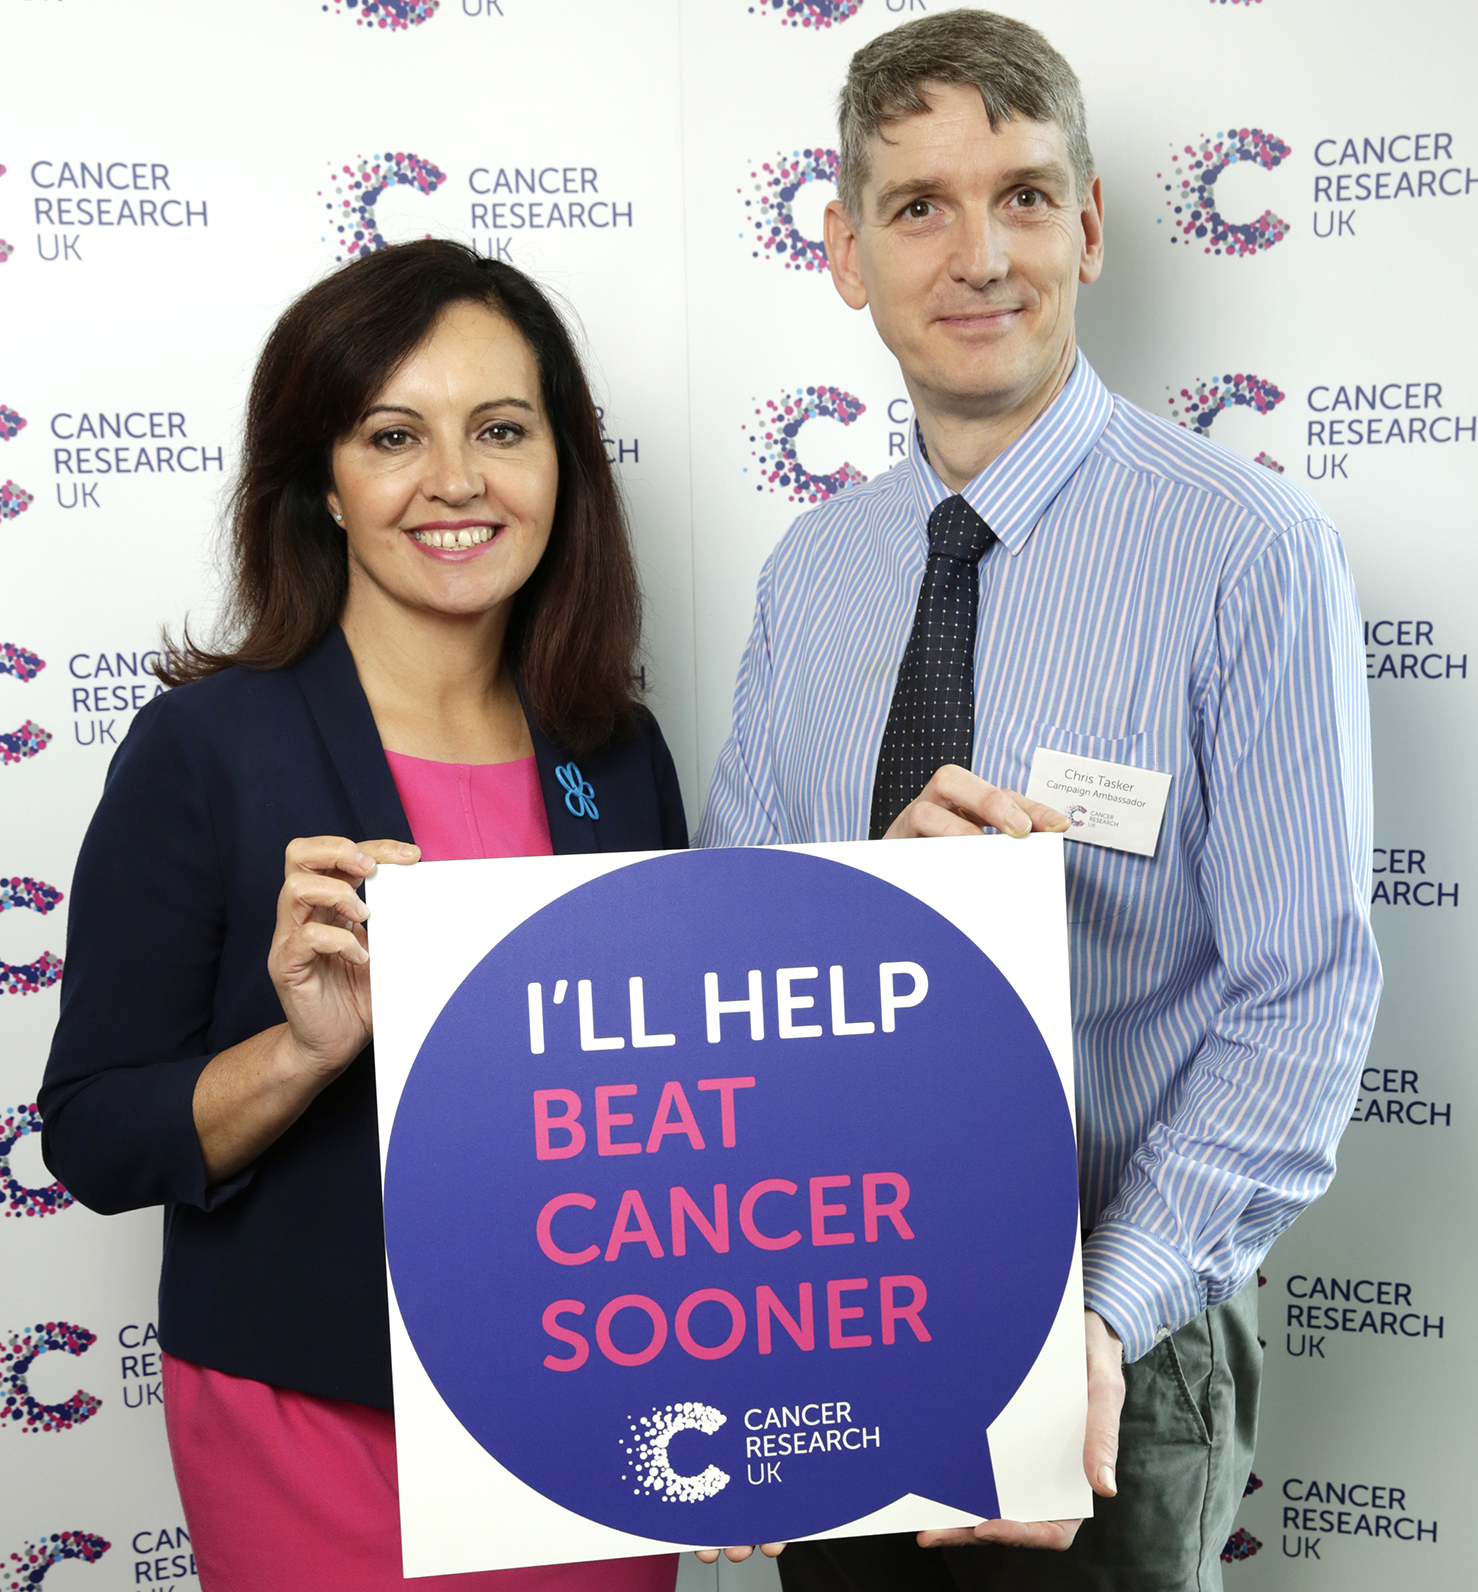 Caroline_Flint_Chris_Tasker_beat_cancer_soon_cropped..jpg